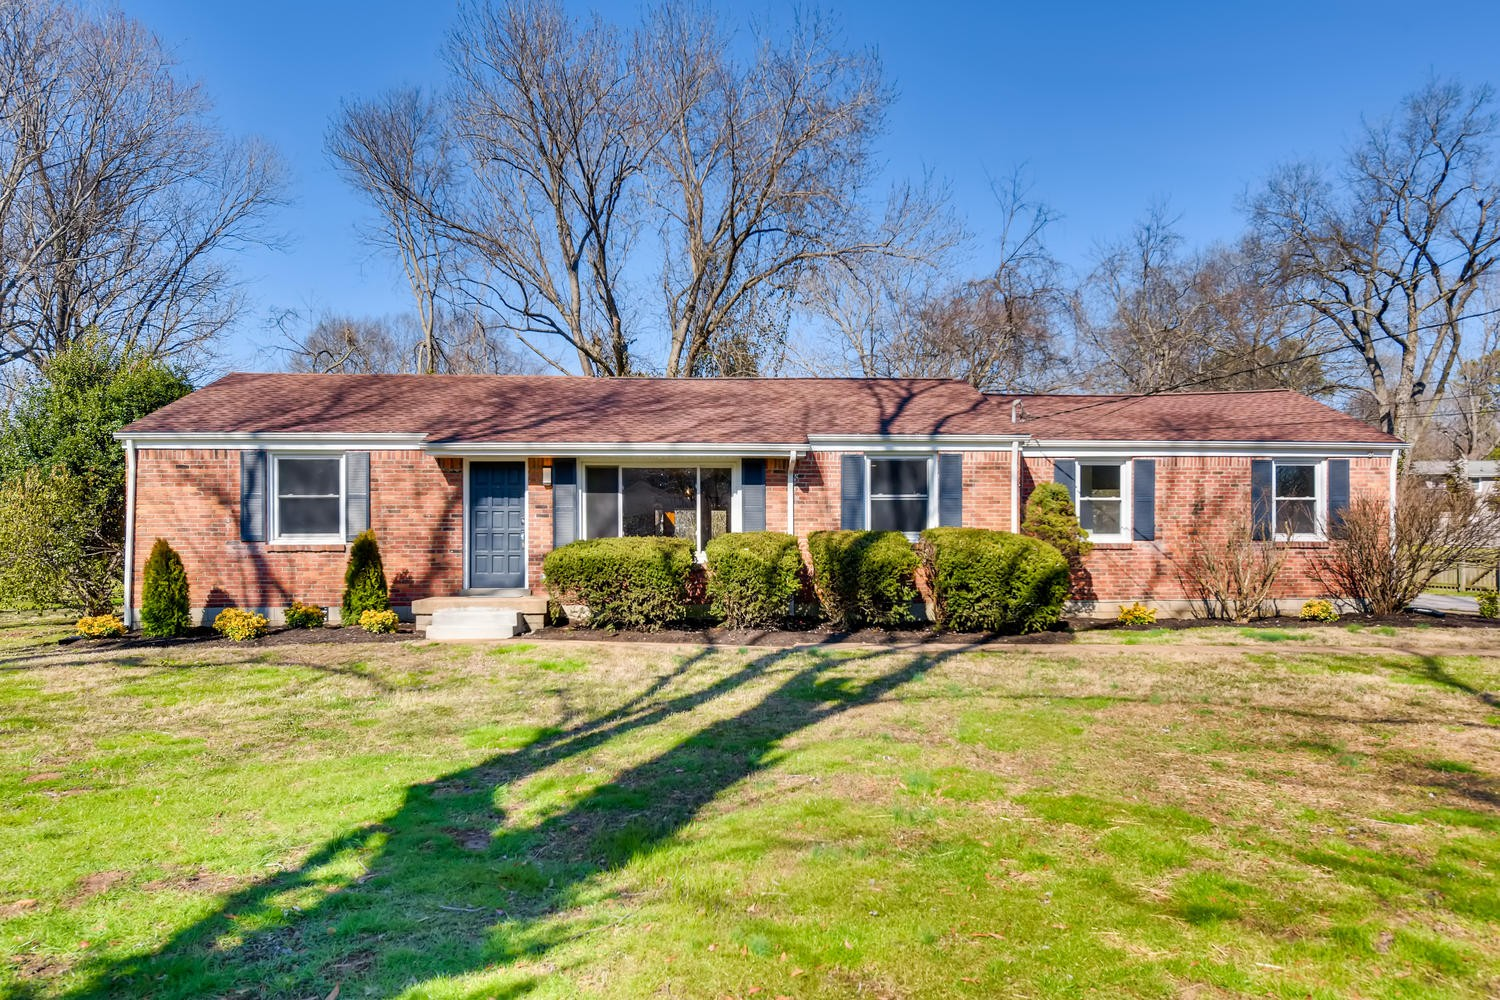 542 Elaine Dr, Nashville, TN 37211 - Nashville, TN real estate listing